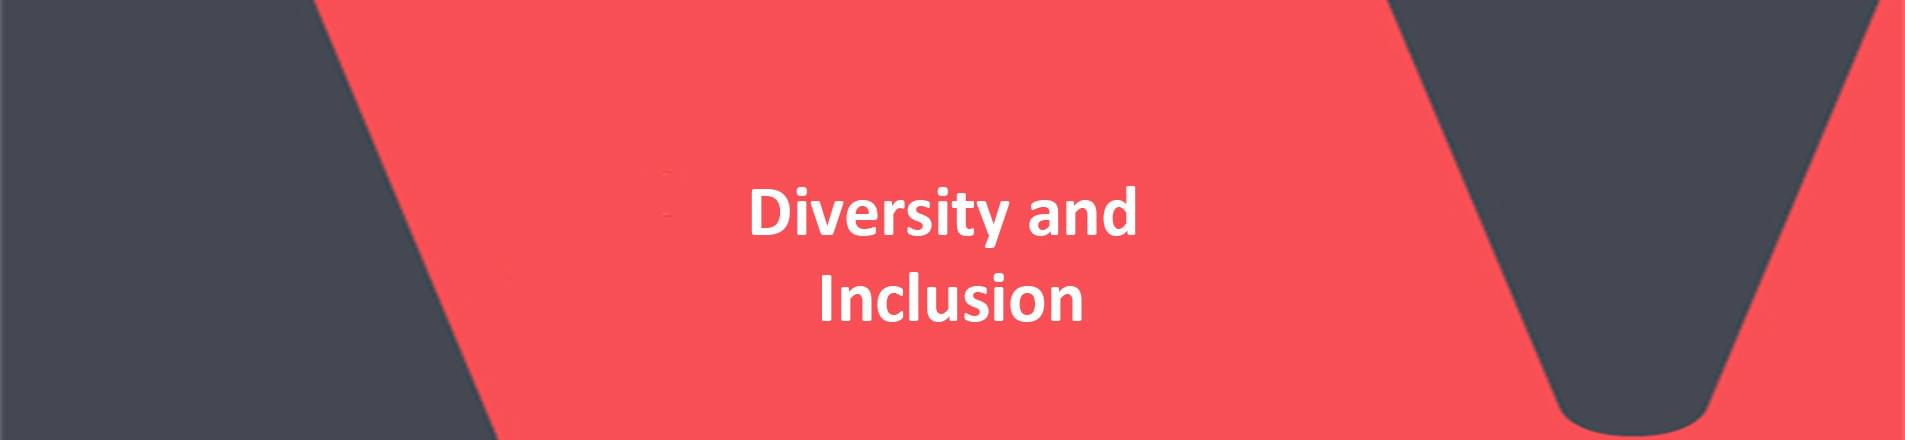 """Image VERCIDA banner.   Red background with the words """"Diversity and Inclusion"""" spelled in white letters."""